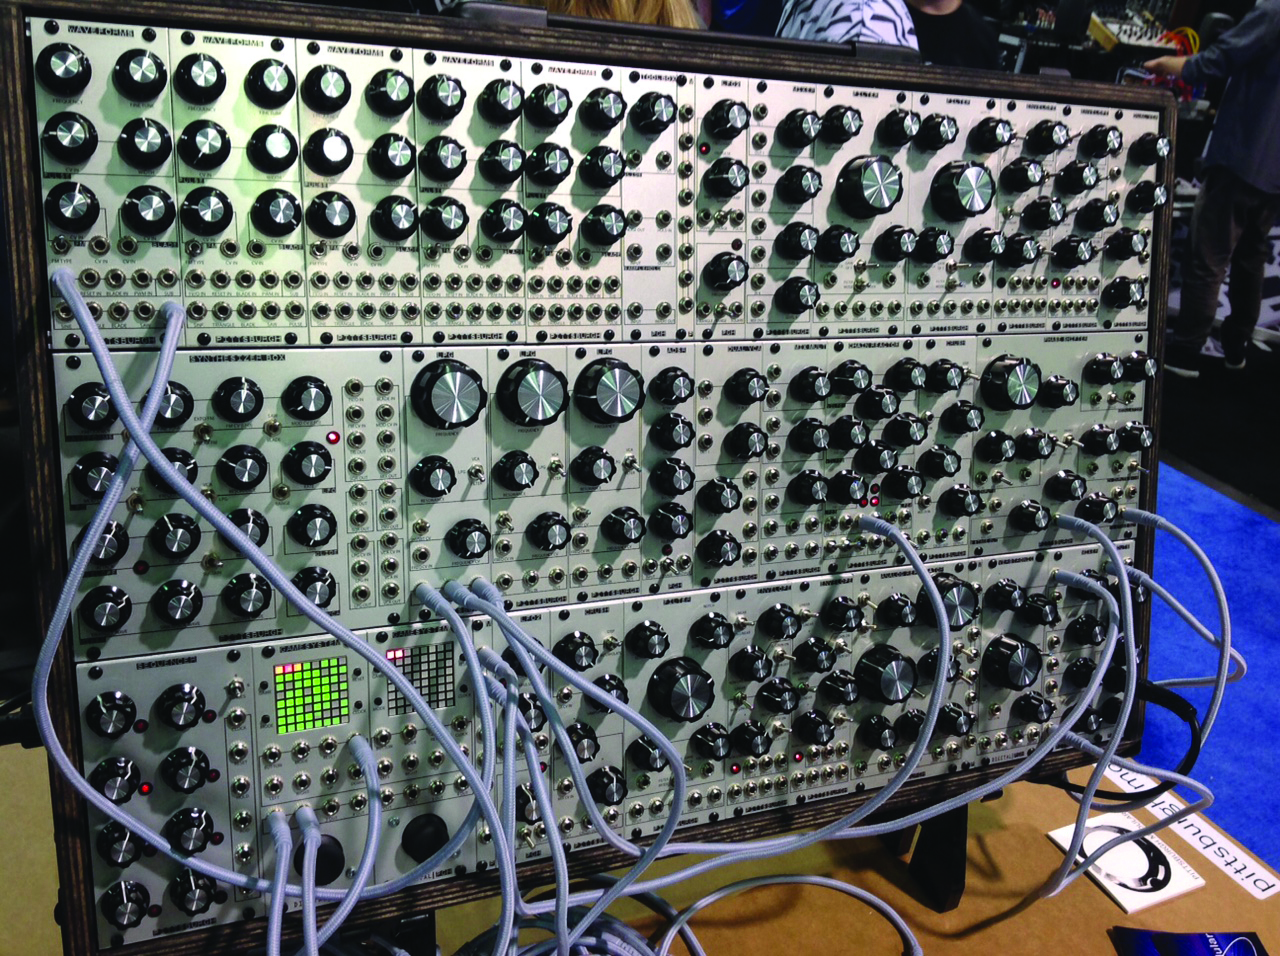 modular synth masterclass build your own. Black Bedroom Furniture Sets. Home Design Ideas